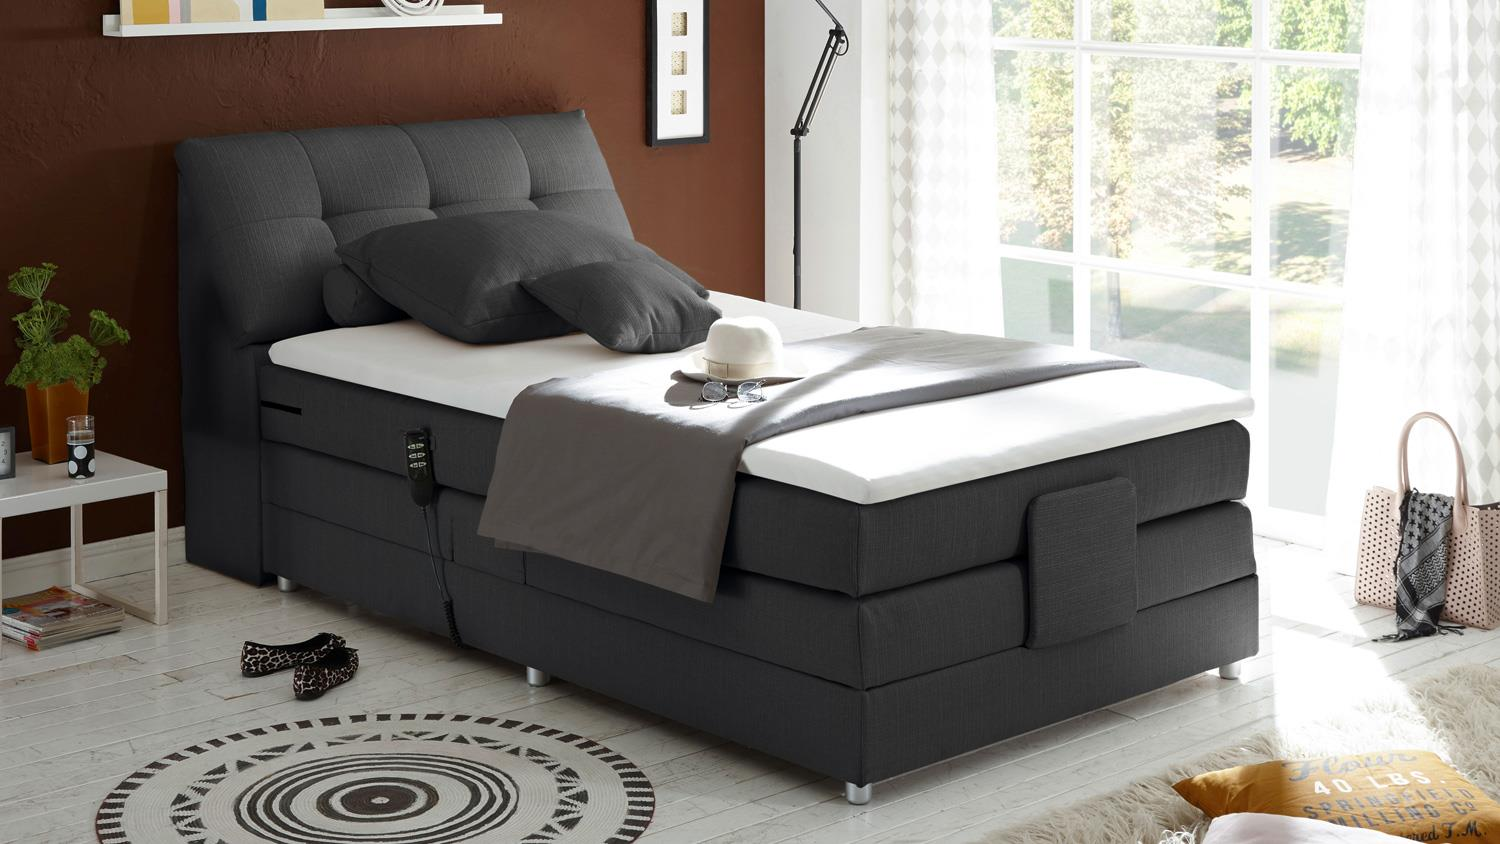 boxspringbett concort stoff anthrazit komfortbett mit. Black Bedroom Furniture Sets. Home Design Ideas